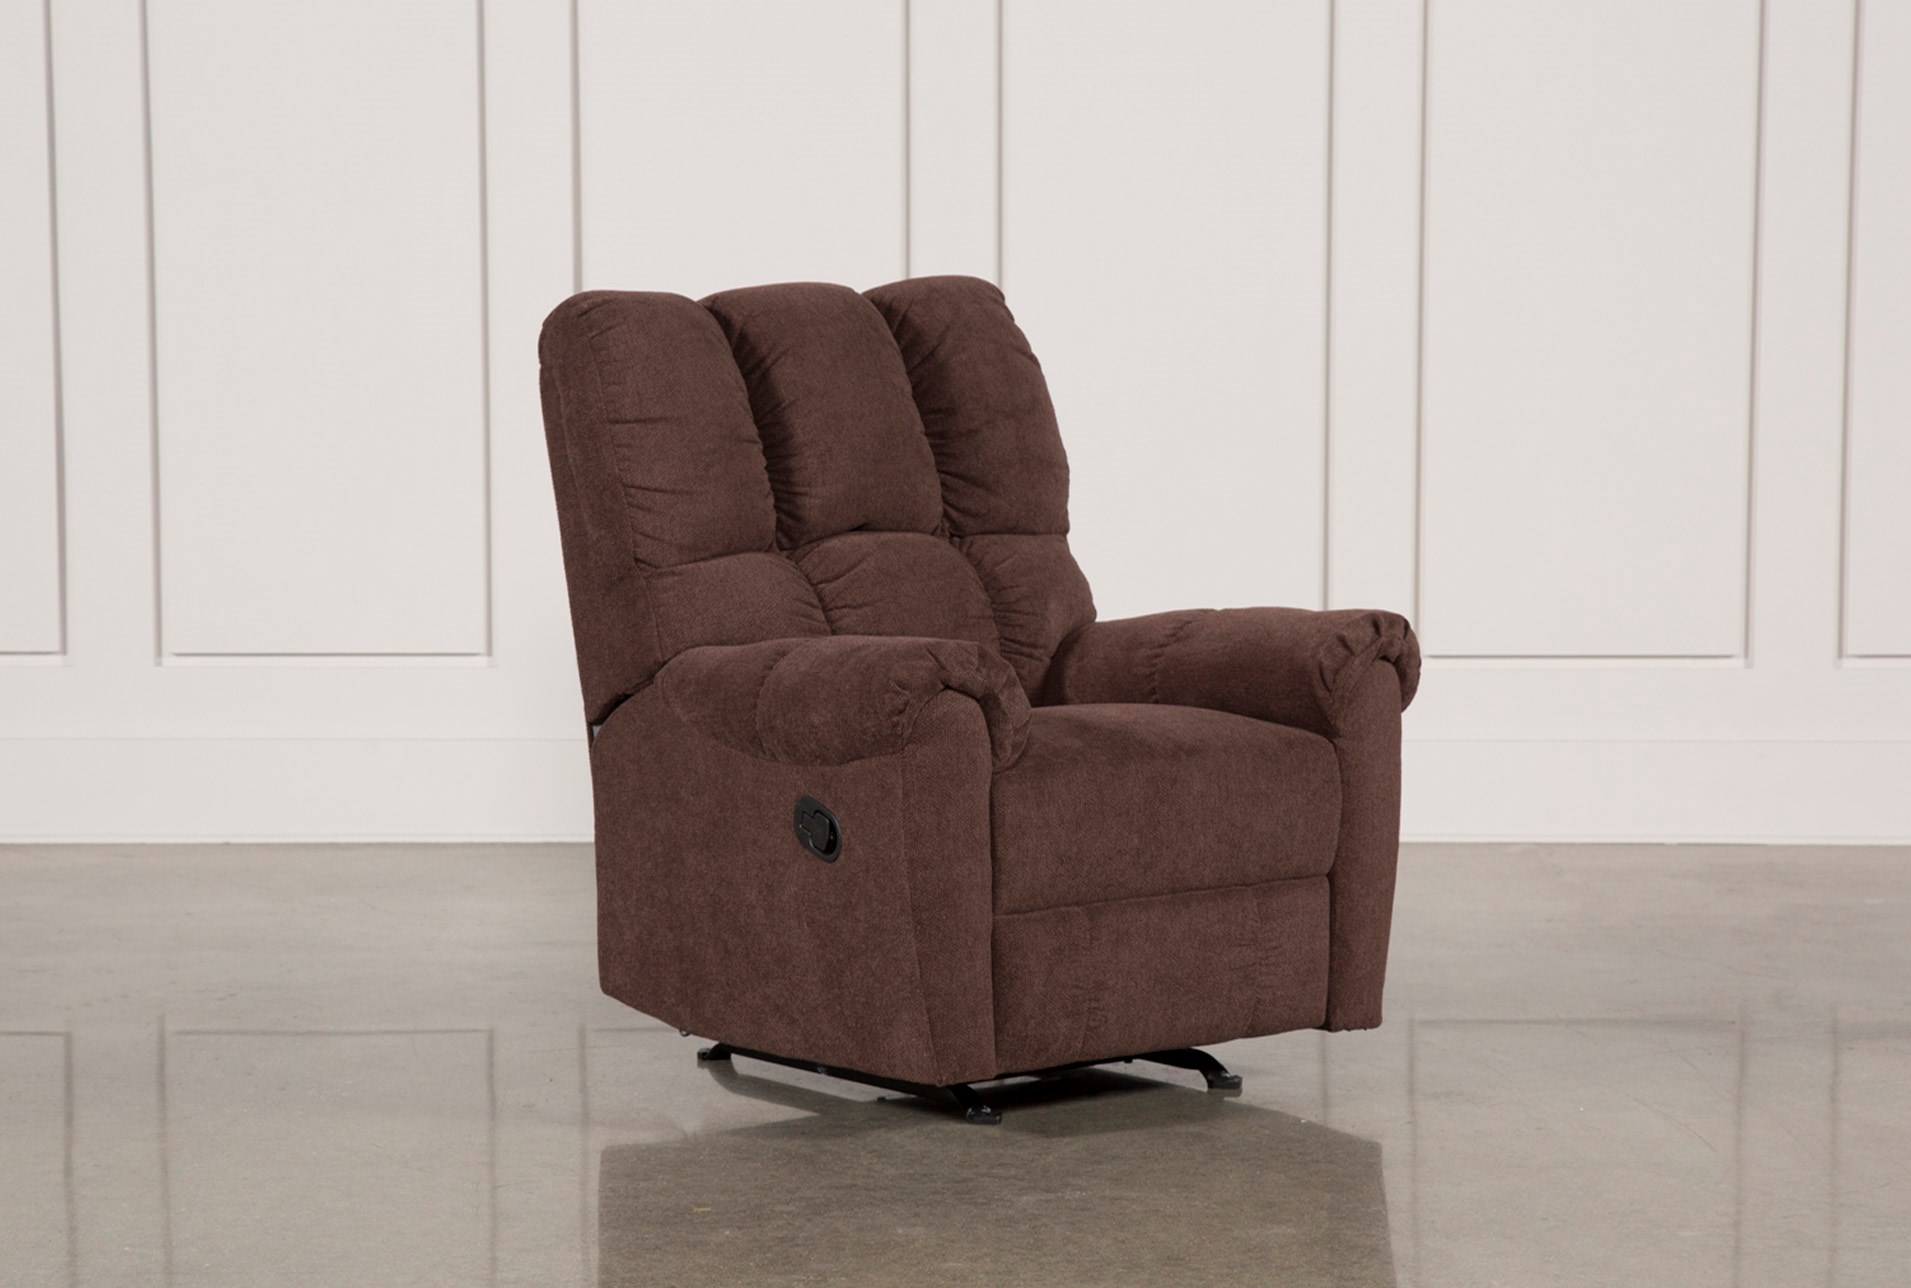 picks power glider gemini category rocker small recliner linen getphotosigned recliners product furniture archives ricks swivel